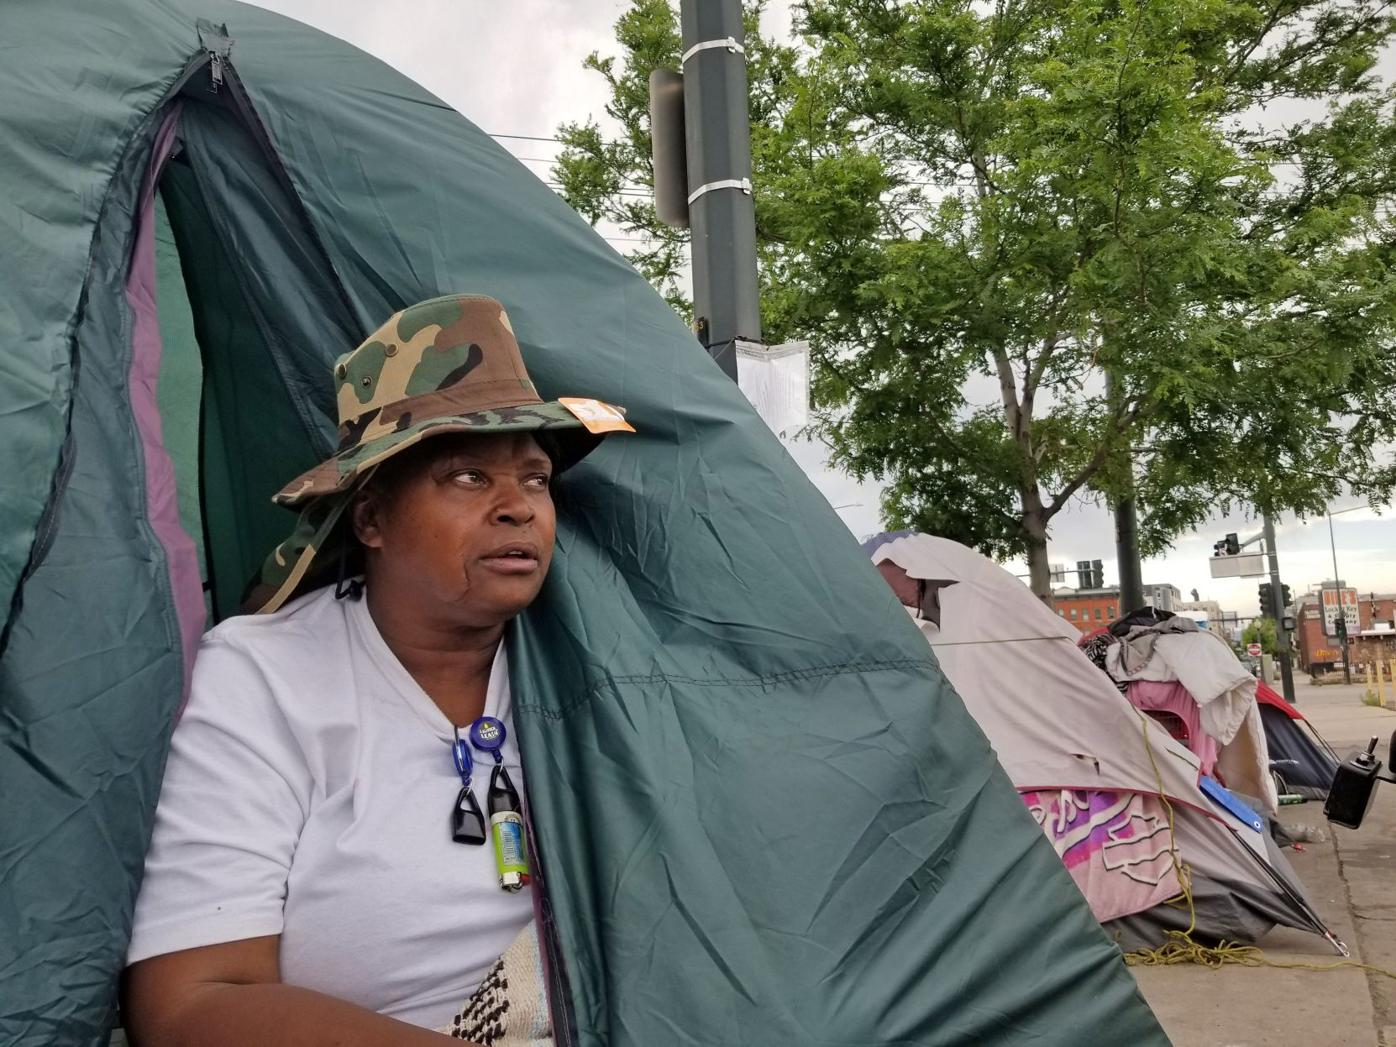 Moving from one camp to another